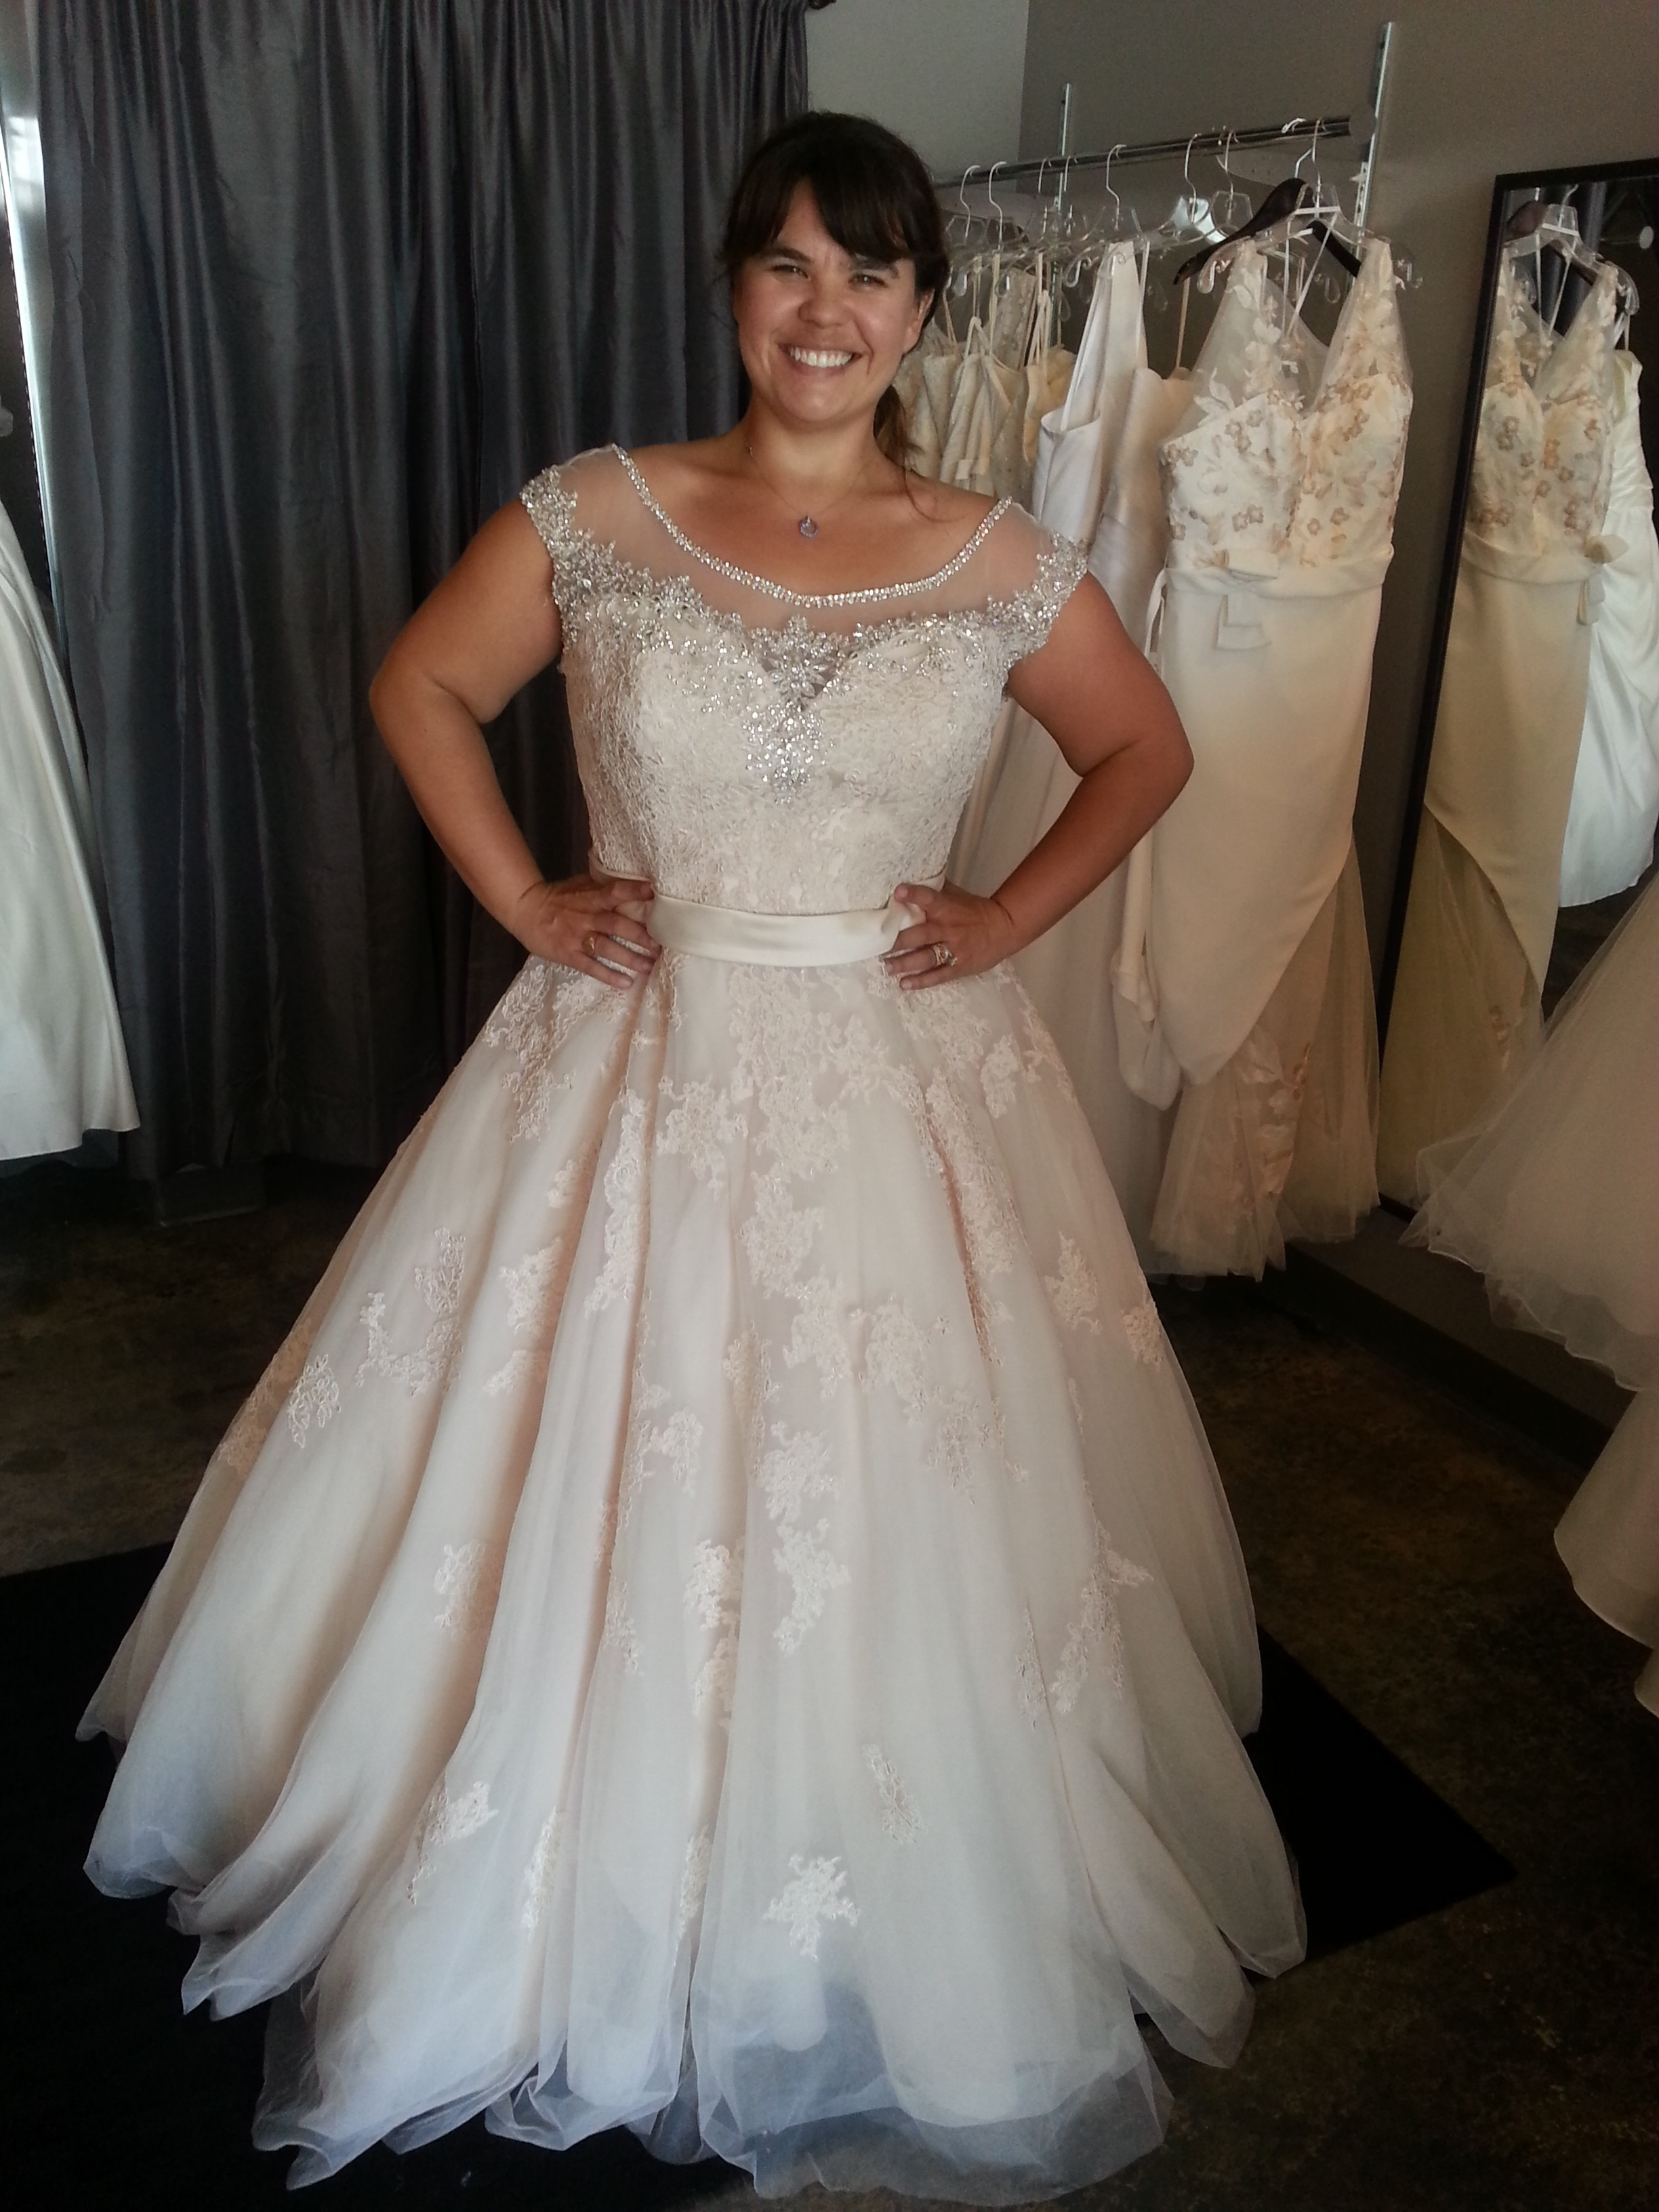 How to Shop for a Wedding Dress, Part 2